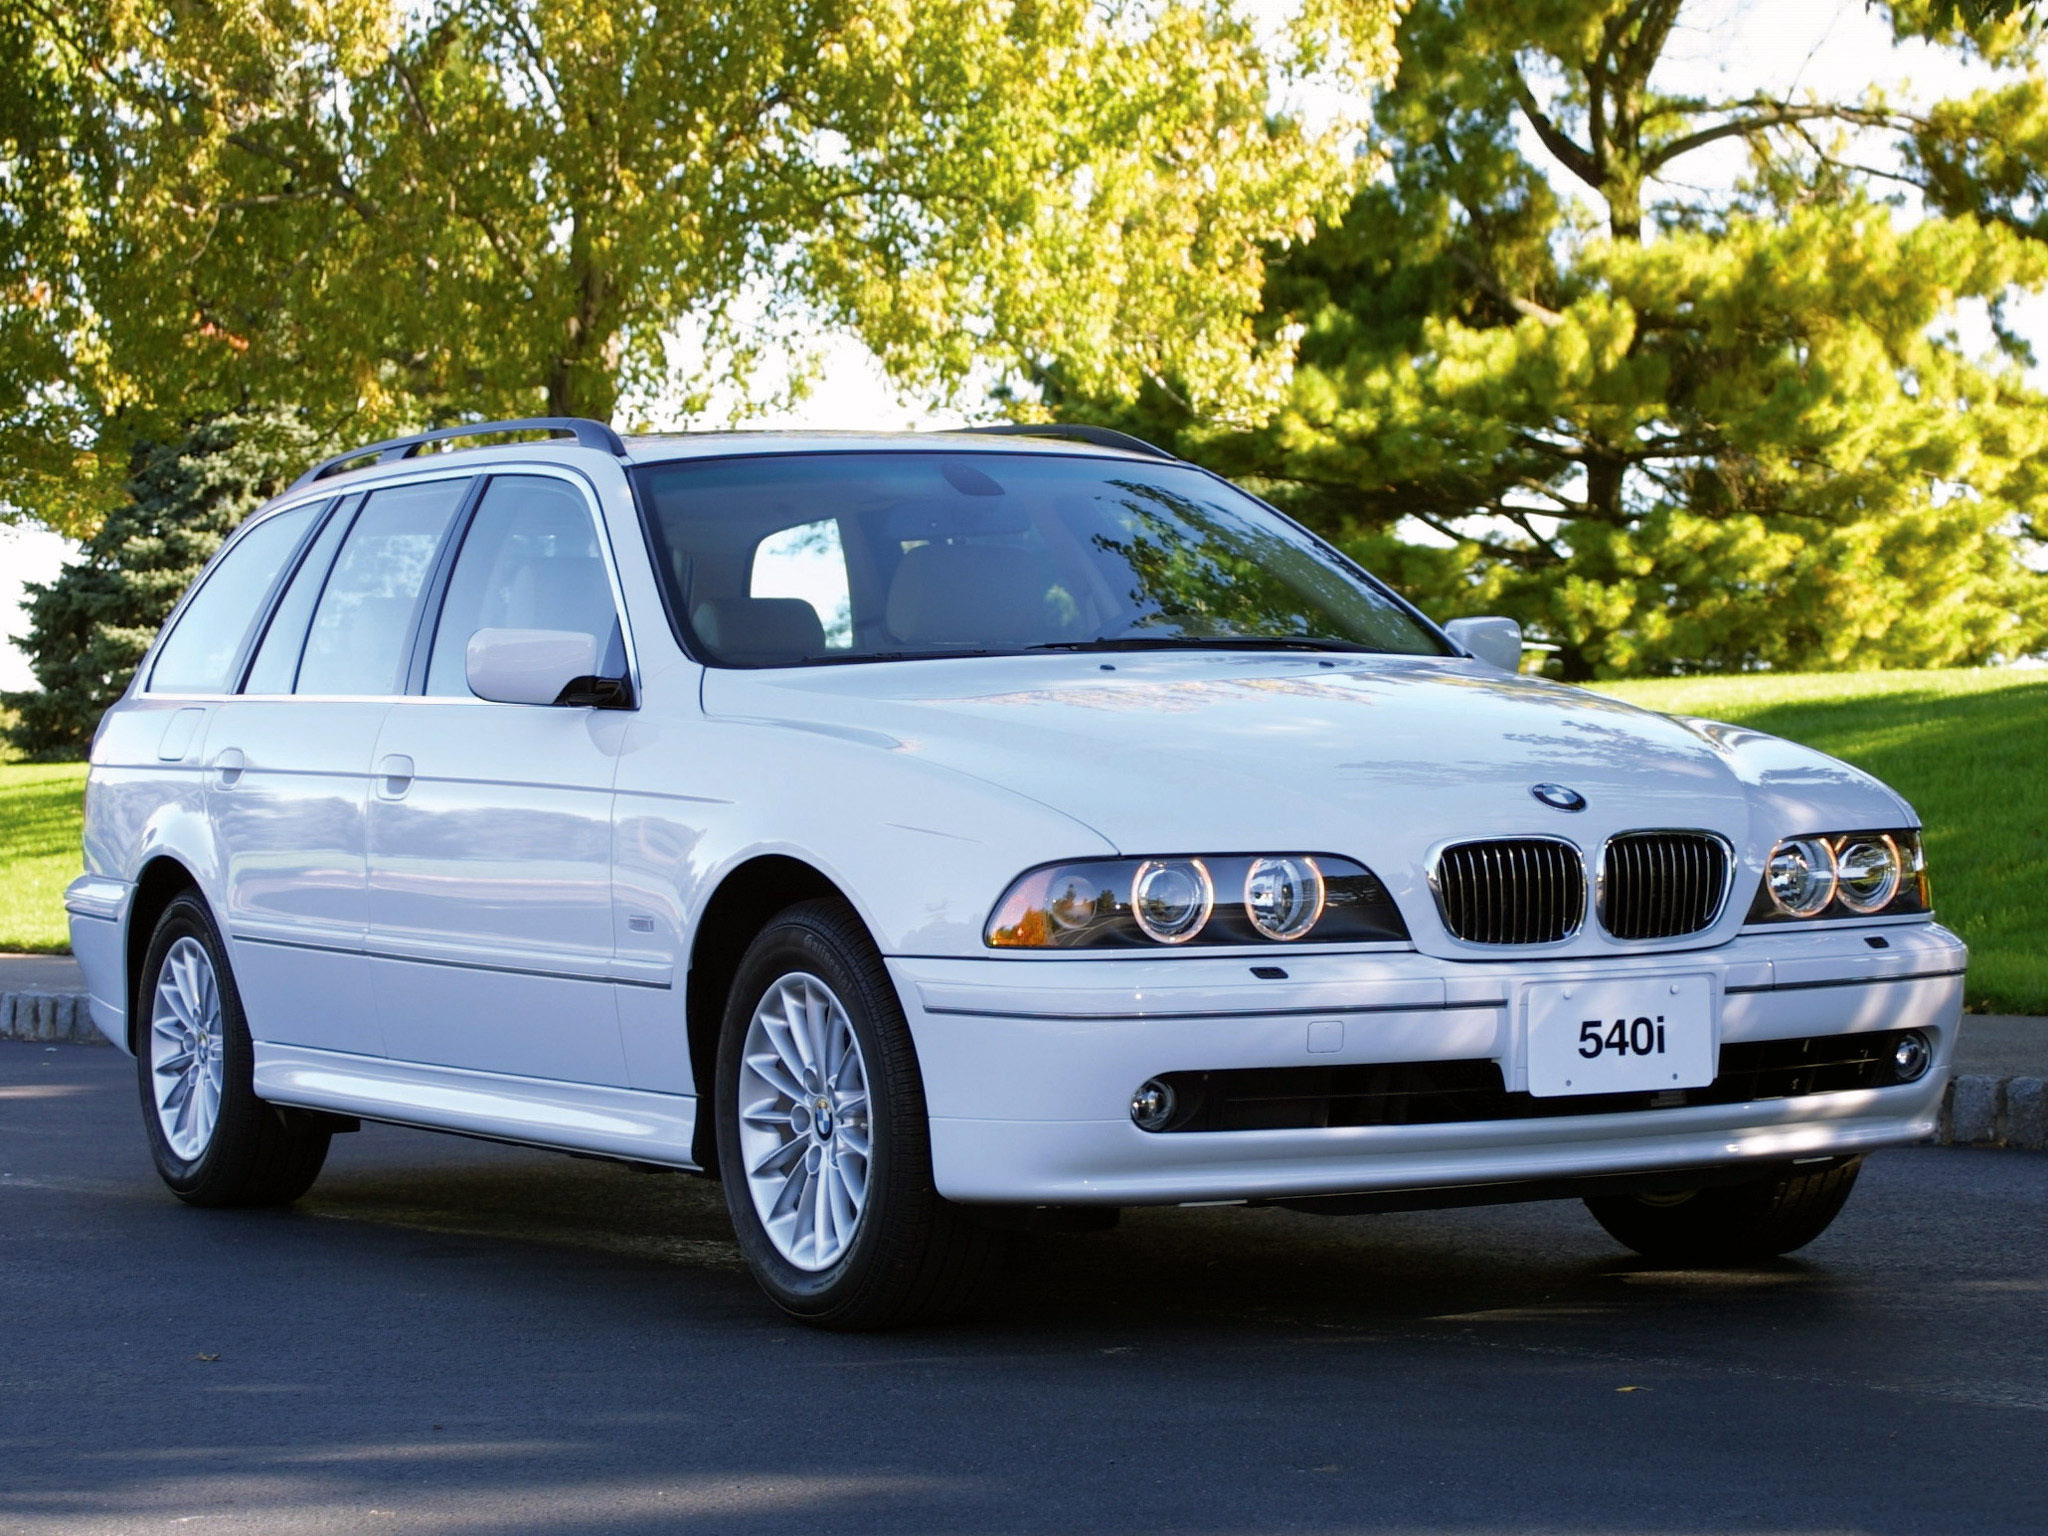 2001 Bmw 5er touring (e39) - pictures, information and ...